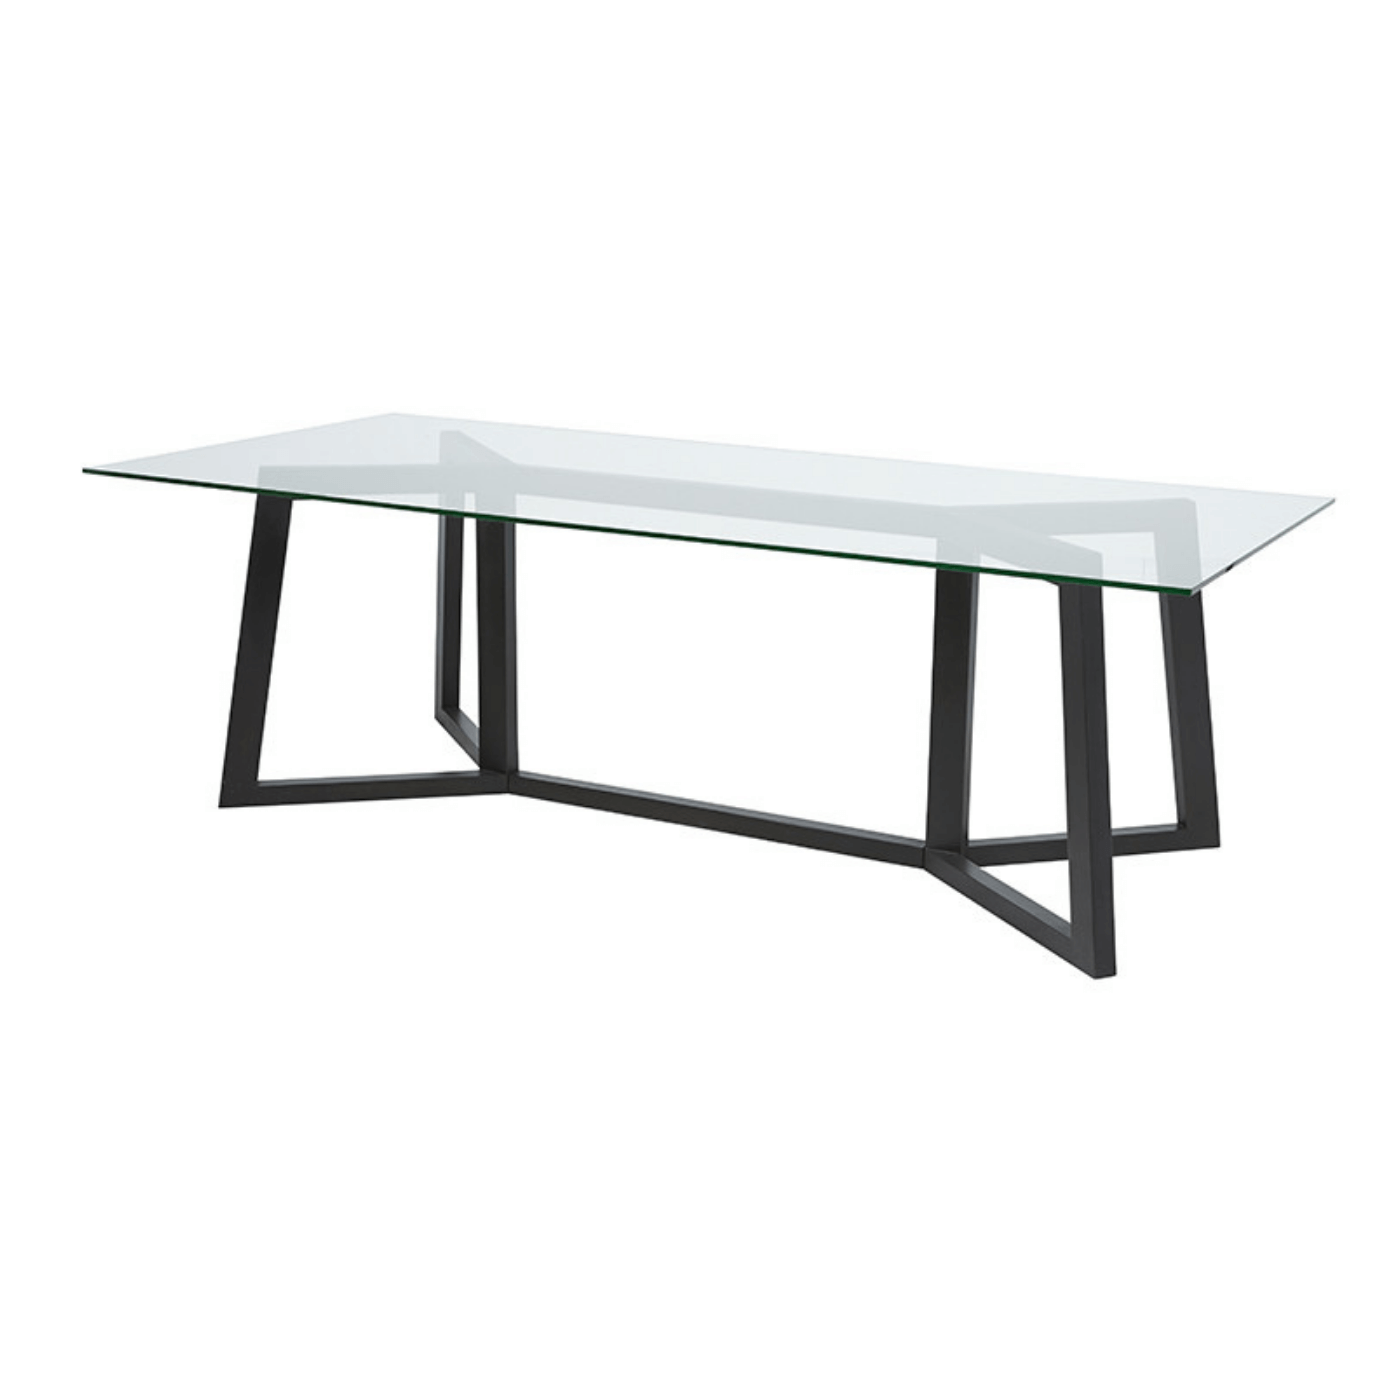 Two Design Lovers Globe West Geo glass dining table